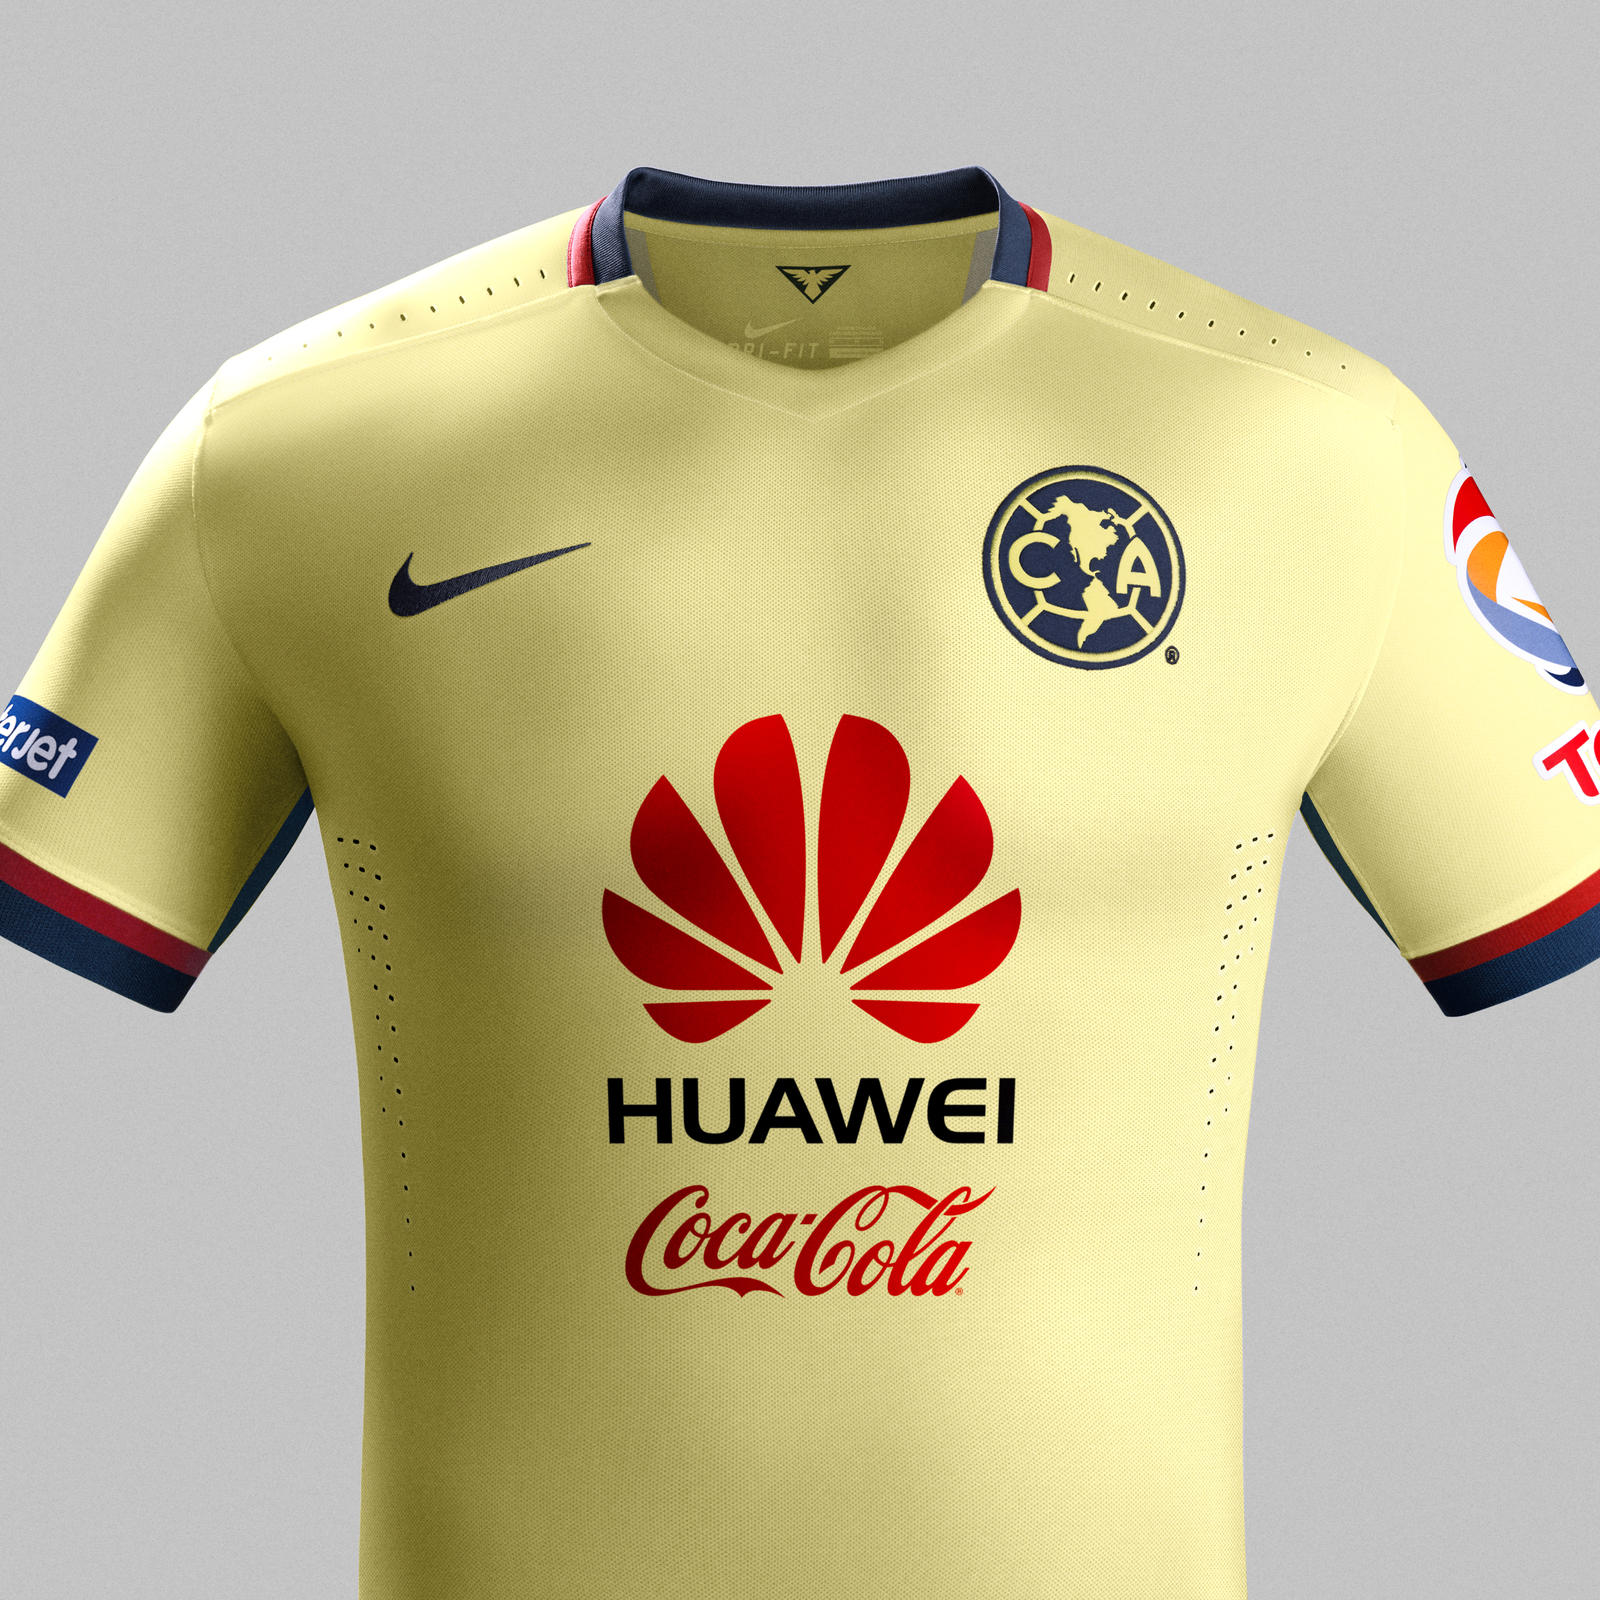 low priced 772e7 6c839 Club América Home and Away Kits for 2015-16 - Nike News